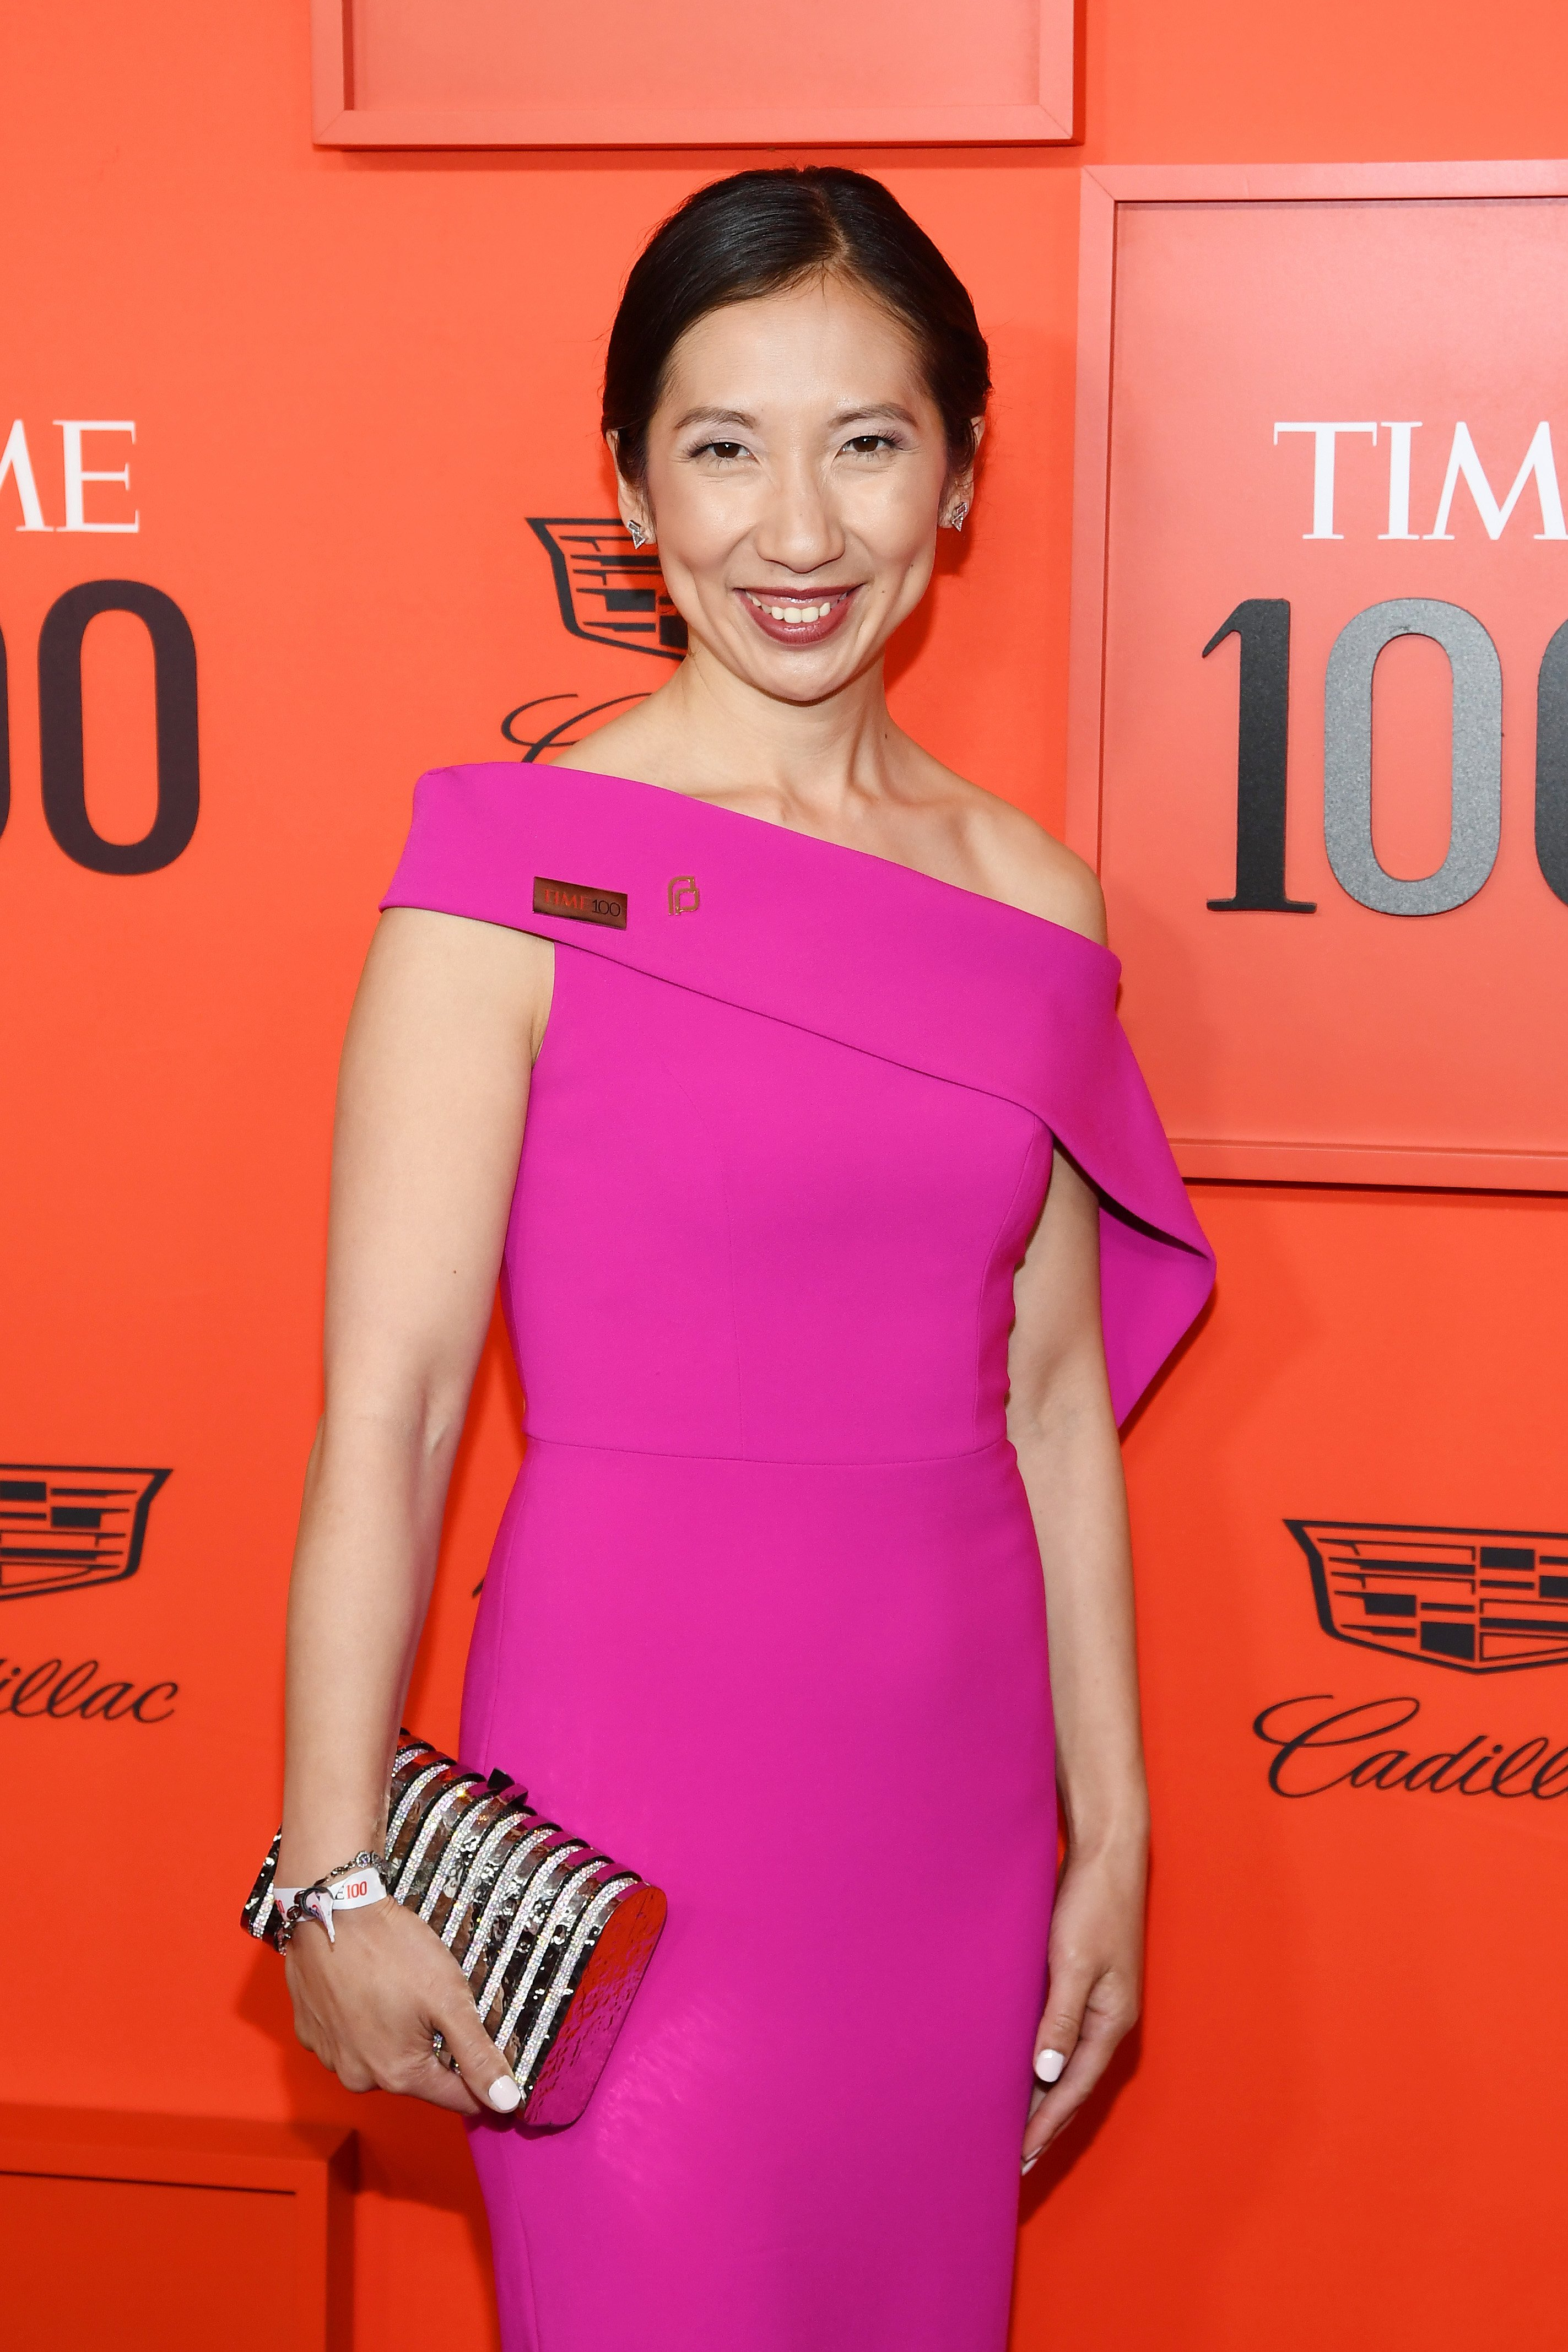 NEW YORK, NEW YORK - APRIL 23: Dr. Leana Wen attends the TIME 100 Gala Red Carpet at Jazz at Lincoln Center on April 23, 2019 in New York City. (Photo by Dimitrios Kambouris/Getty Images for TIME)